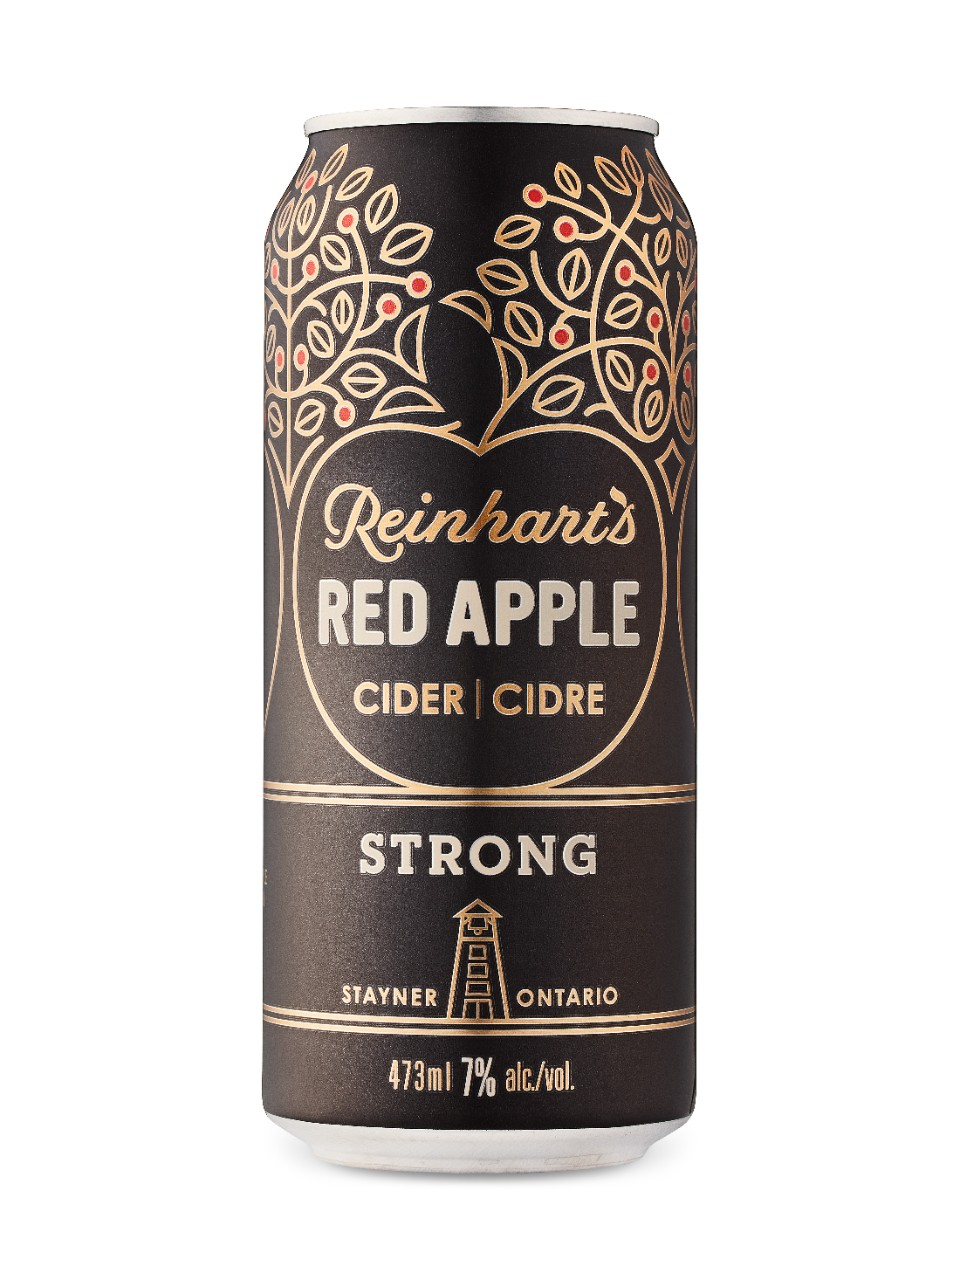 Reinhart's Red Apple Strong Cider from LCBO